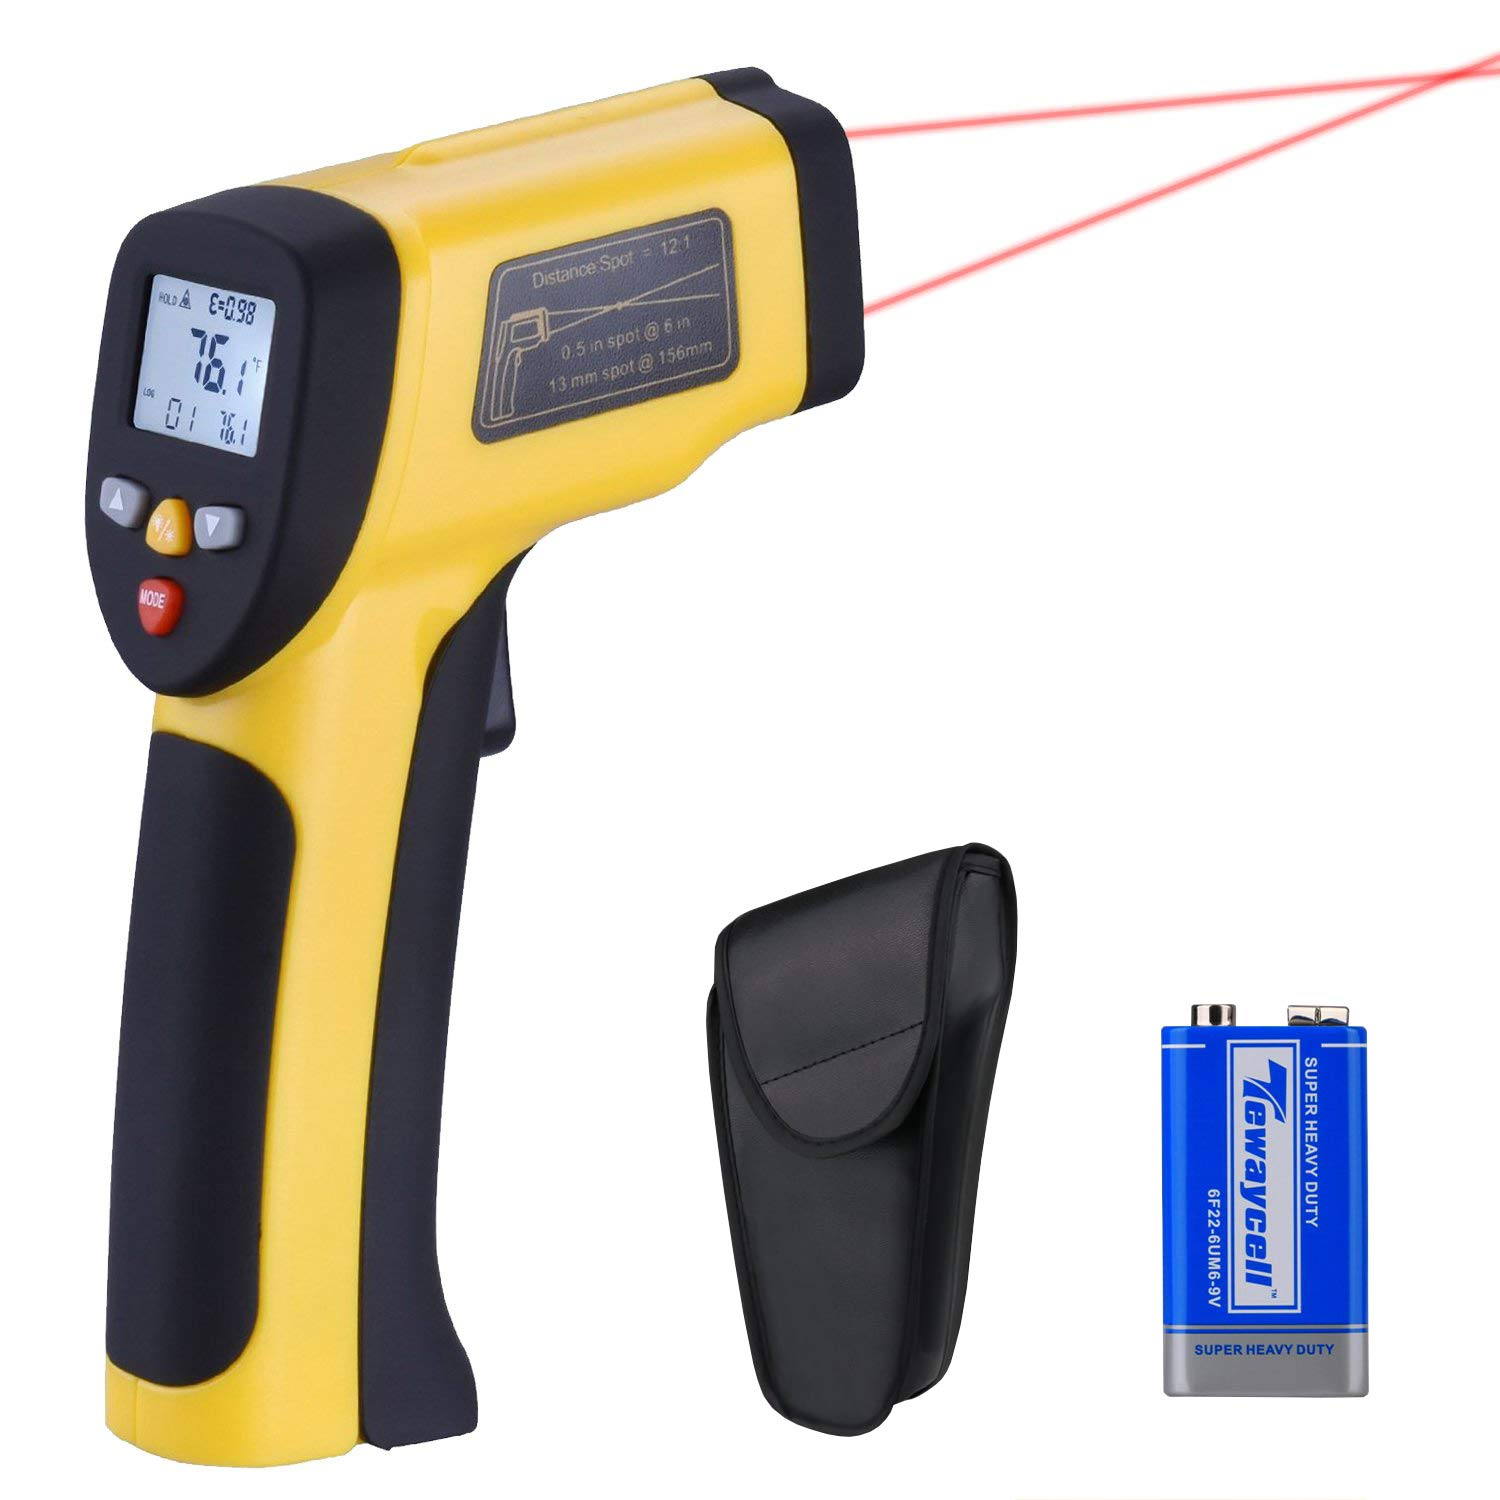 LURICO Infrared Thermometer, Helect Non-contact Digital Laser Temperature Gun (-58°F~1202°F/-50°C~650°C) - Accurate Digital Surface IR Thermometer with LCD Display (Battery Included) by LURICO